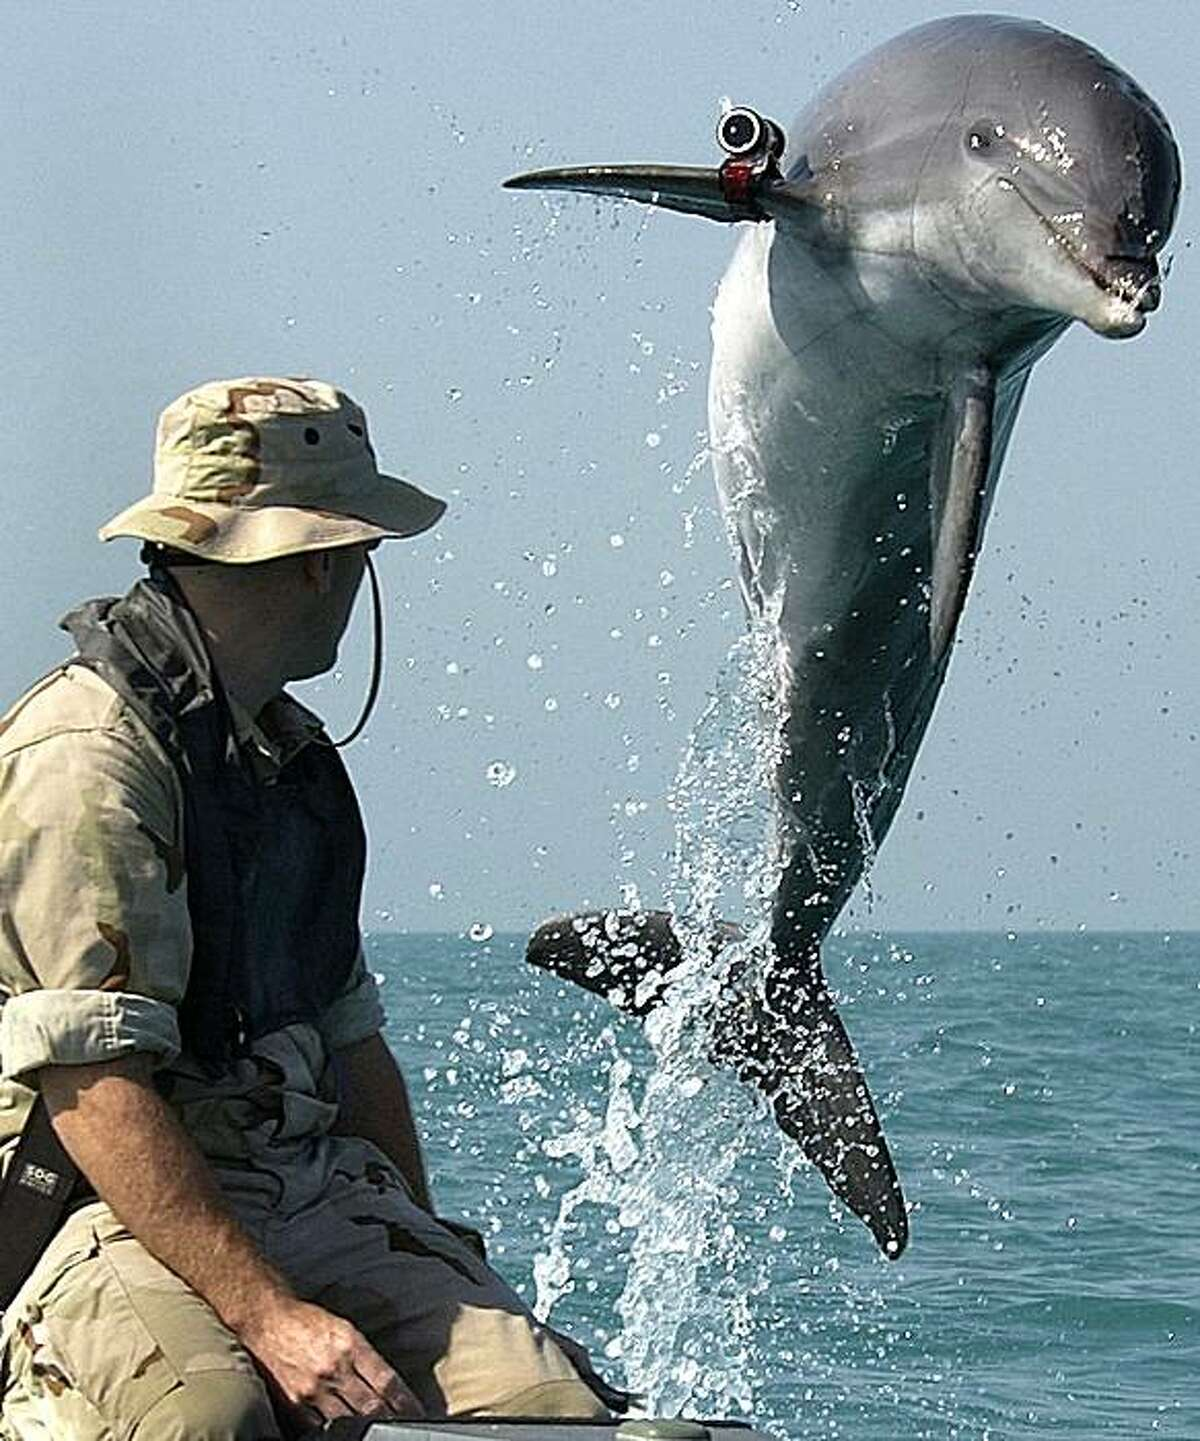 Kahili, a mine-hunting dolphin, jumps out of the water while a Navy handler looks on in March 2003 in Iraq. The dolpin was one of several sent to clear the harbor of Umm Qasr of mines before a British relief ship could unload supplies. The item attached to the dolphin's pectoral fin is a tracking device.